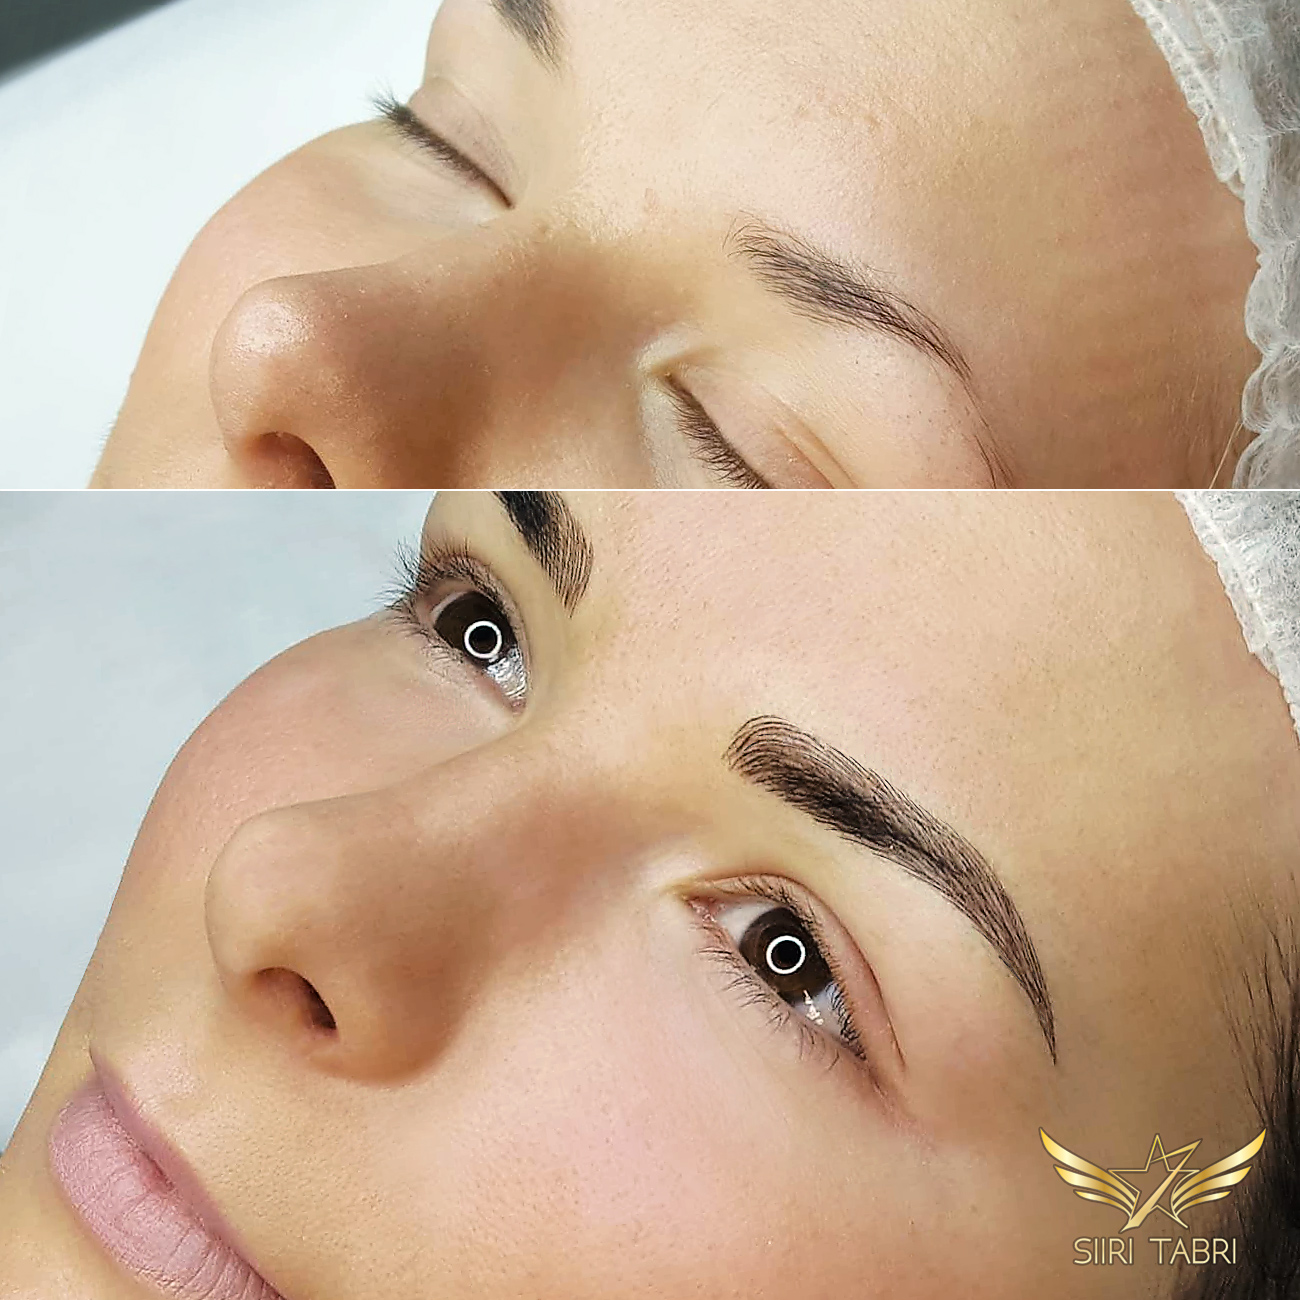 Light microblading. Brows enhanced the right way will change the overall look of the face entirely. So far the light microblading technique has produced the best results.